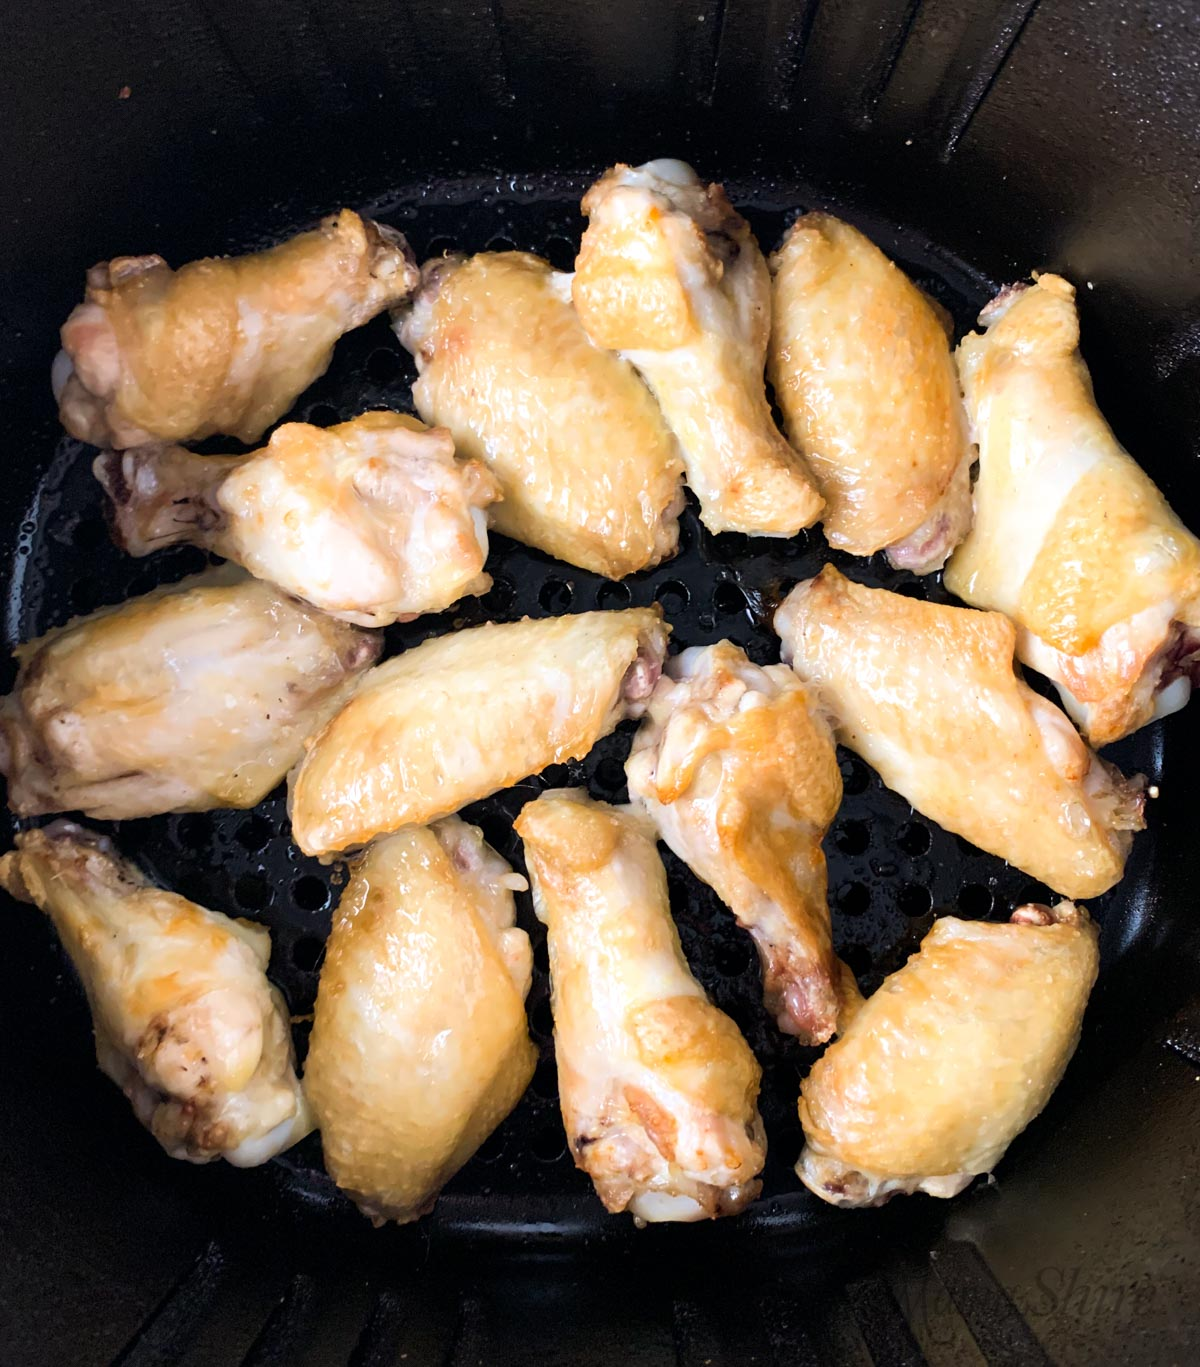 Chicken wings halfway cooked in an air fryer.